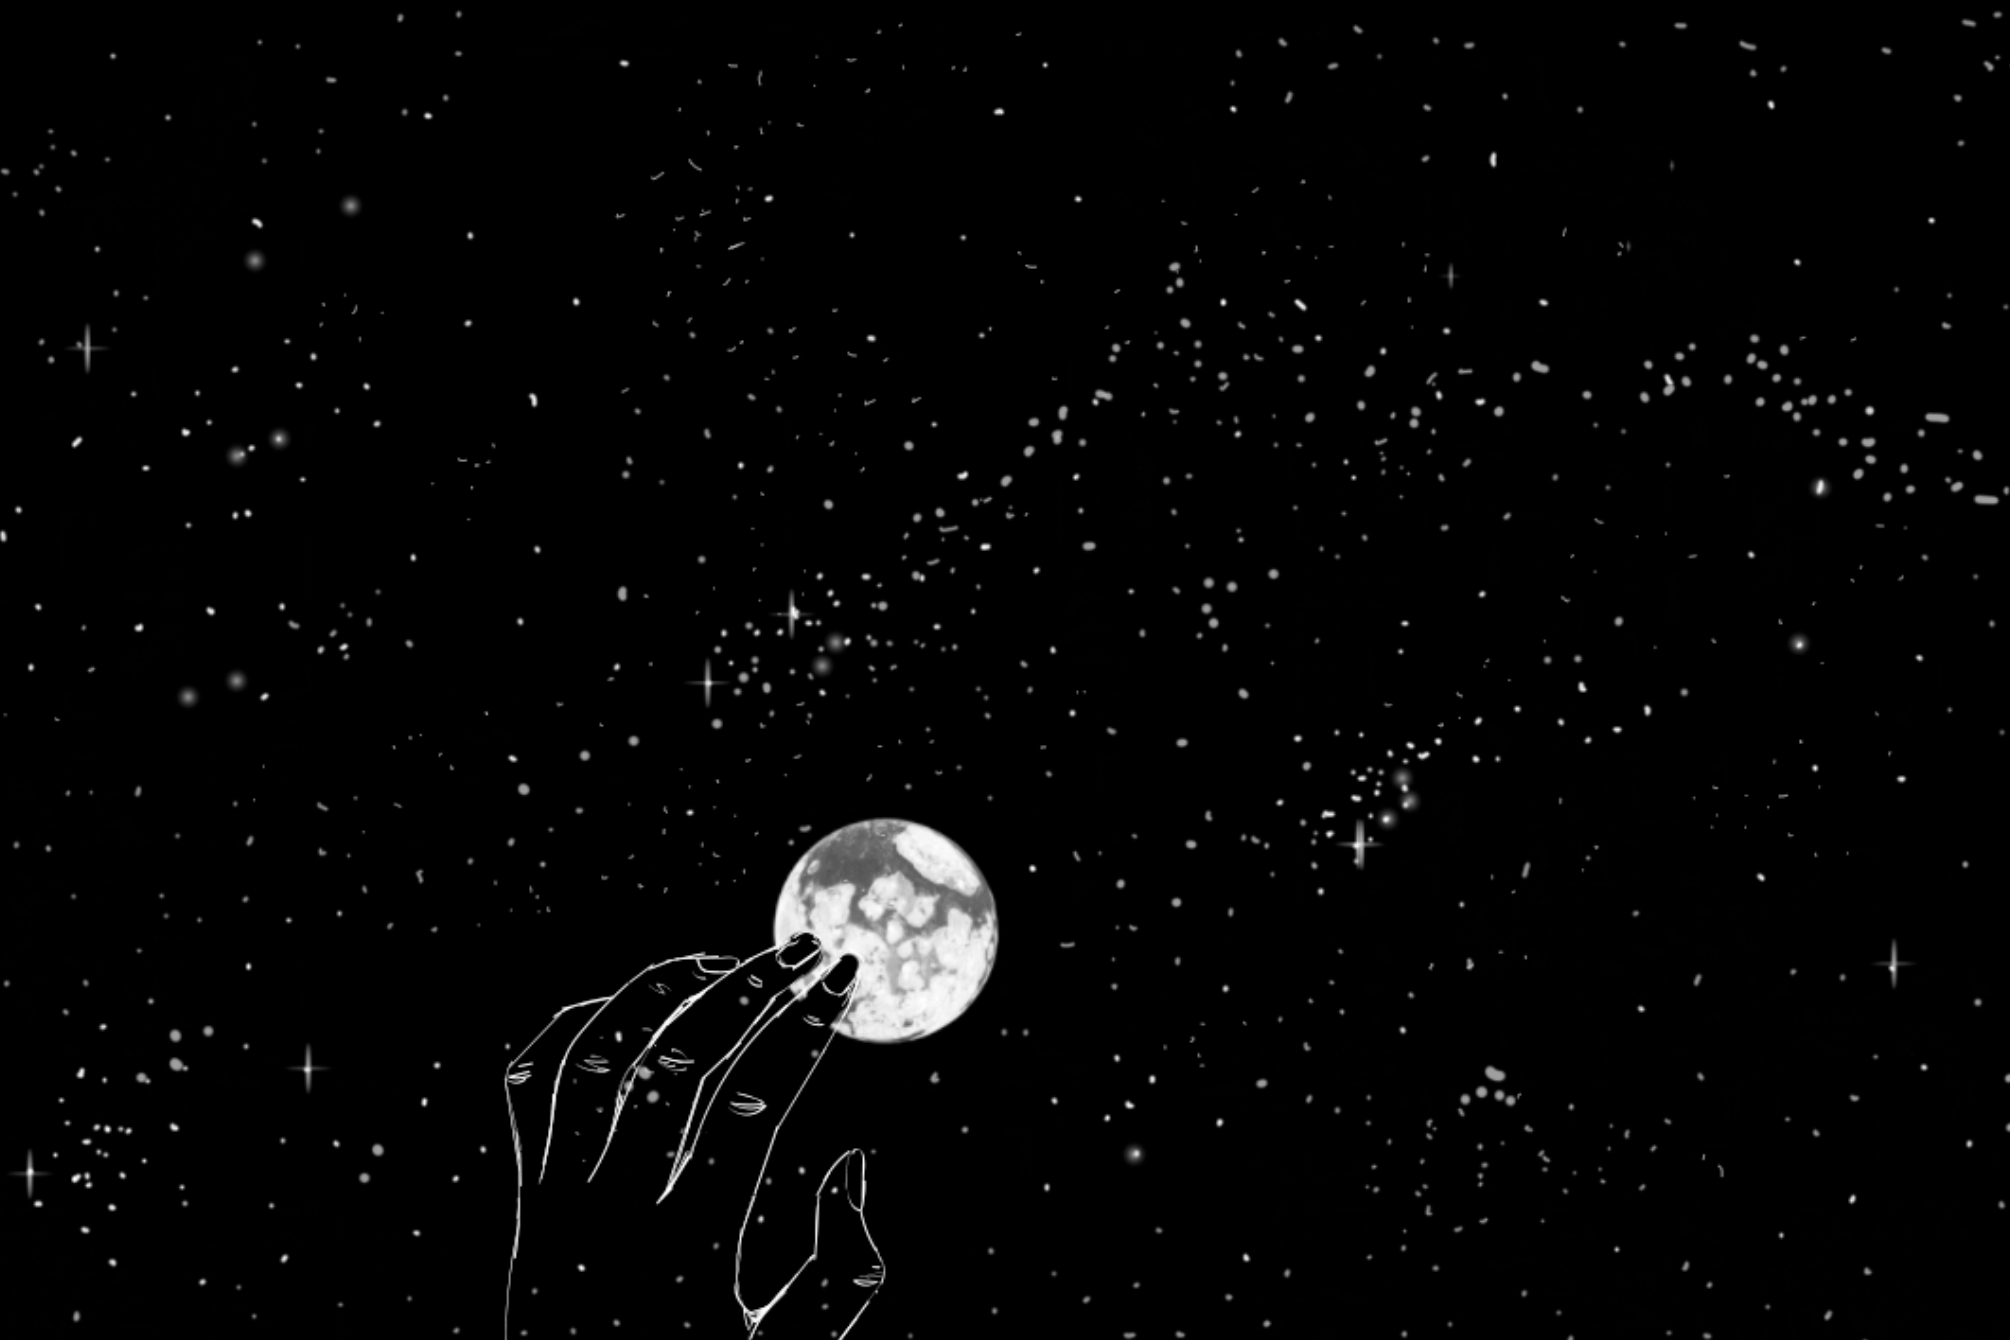 """Neve Sowinski, Amongst the Stars, 2019 (Animation still from the """"Black Square Project"""")"""